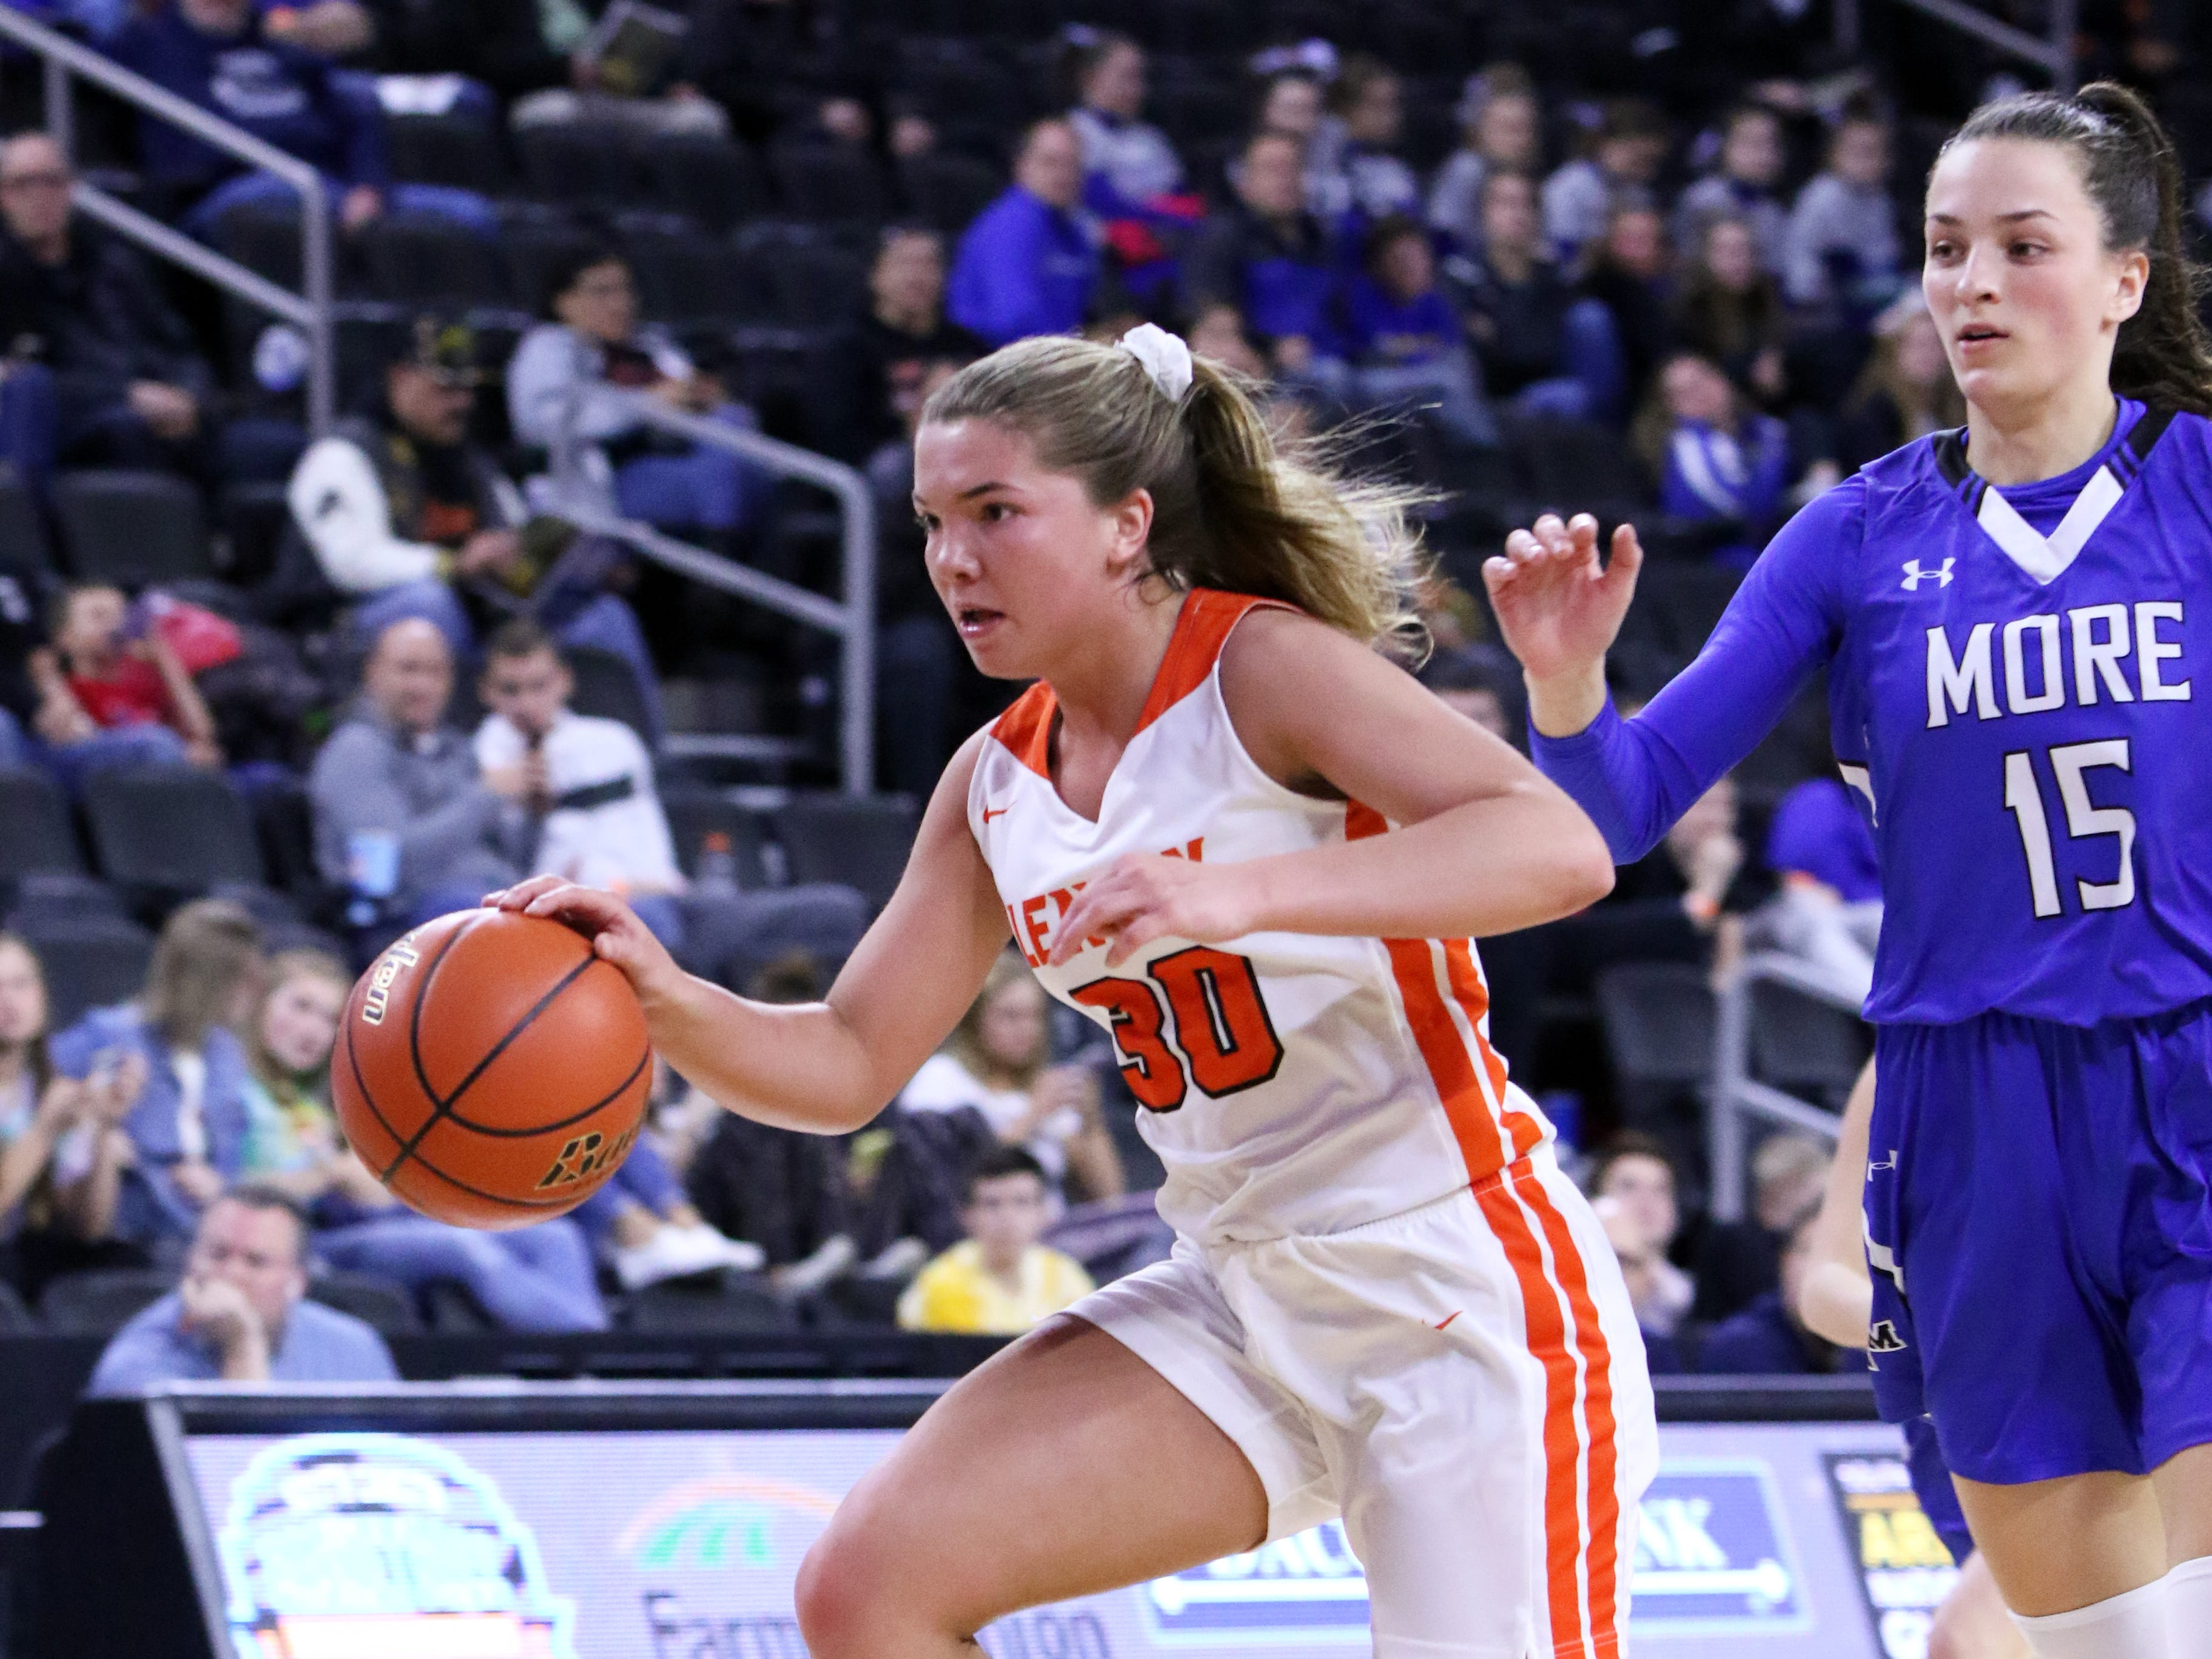 Rianna Fillipi of Lennox sprints away from Ciara Benson of St Thomas More during Thursday's game at the Premier Center in Sioux Falls.